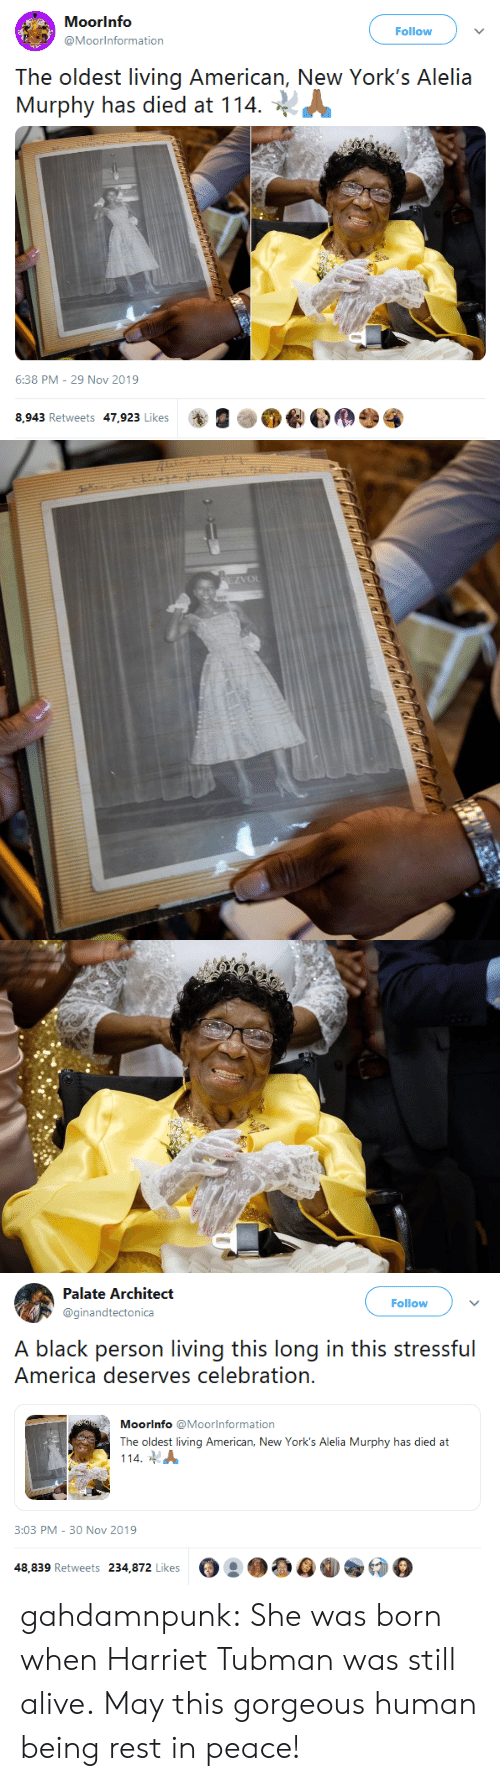 Alive, America, and Tumblr: Moorinfo  Follow  @Moorinformation  The oldest living American, New York's Alelia  Murphy has died at 114  6:38 PM - 29 Nov 2019  8,943 Retweets 47,923 Likes   EZVOL   Palate Architect  Follow  @ginandtectonica  A black person living this long in this stressful  America deserves celebration.  Moorinfo @Moorlnformation  The oldest living American, New York's Alelia Murphy has died at  114  3:03 PM - 30 Nov 2019  48,839 Retweets 234,872 Likes gahdamnpunk: She was born when Harriet Tubman was still alive. May this gorgeous human being rest in peace!